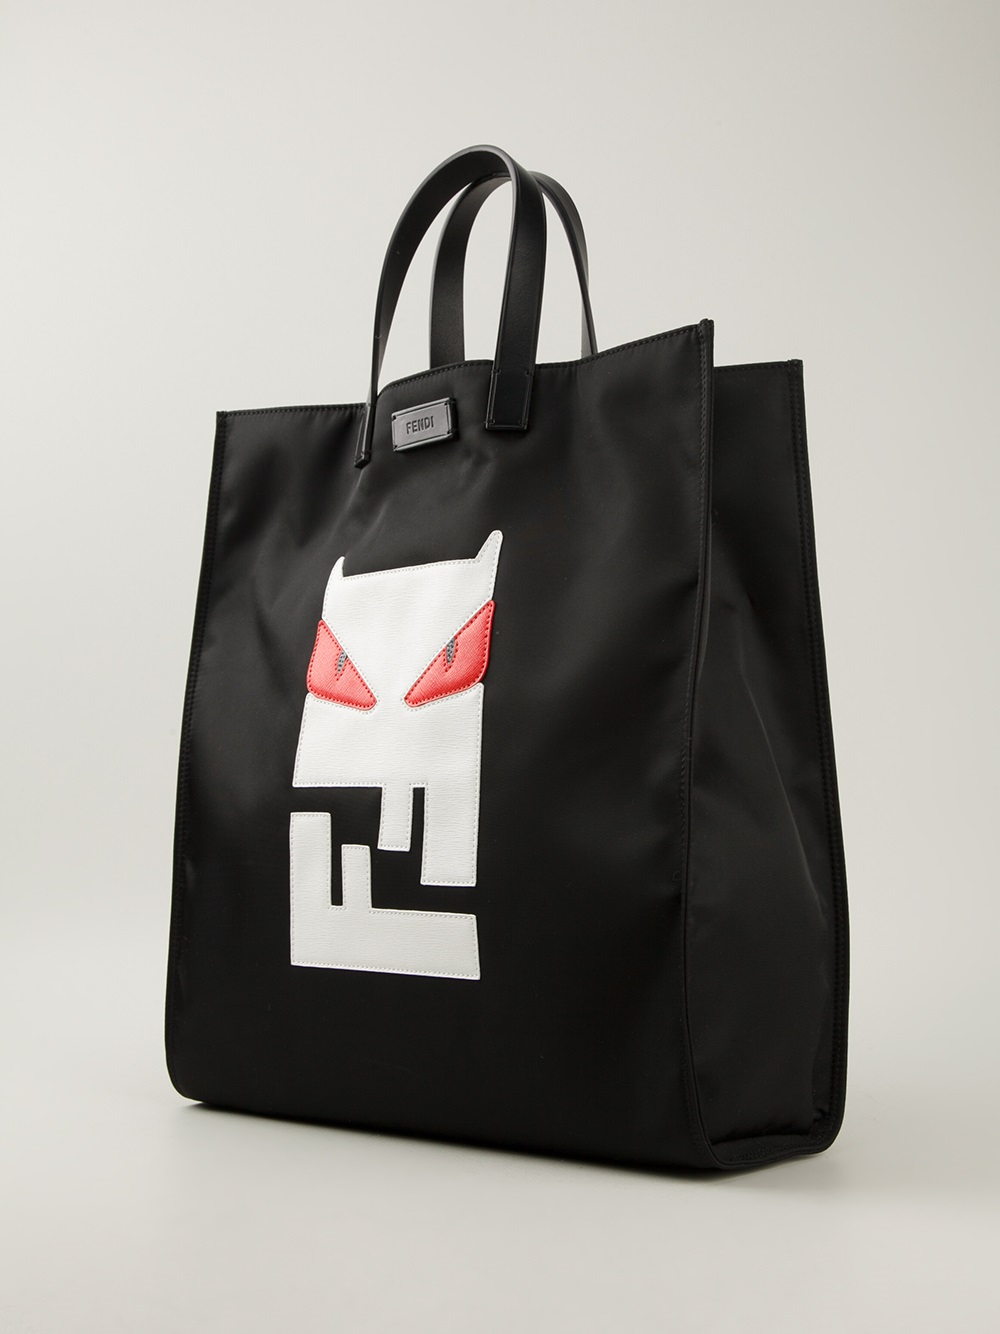 66c4caa2dd5a ... free shipping lyst fendi bag bugs tote in black for men e5324 1496a